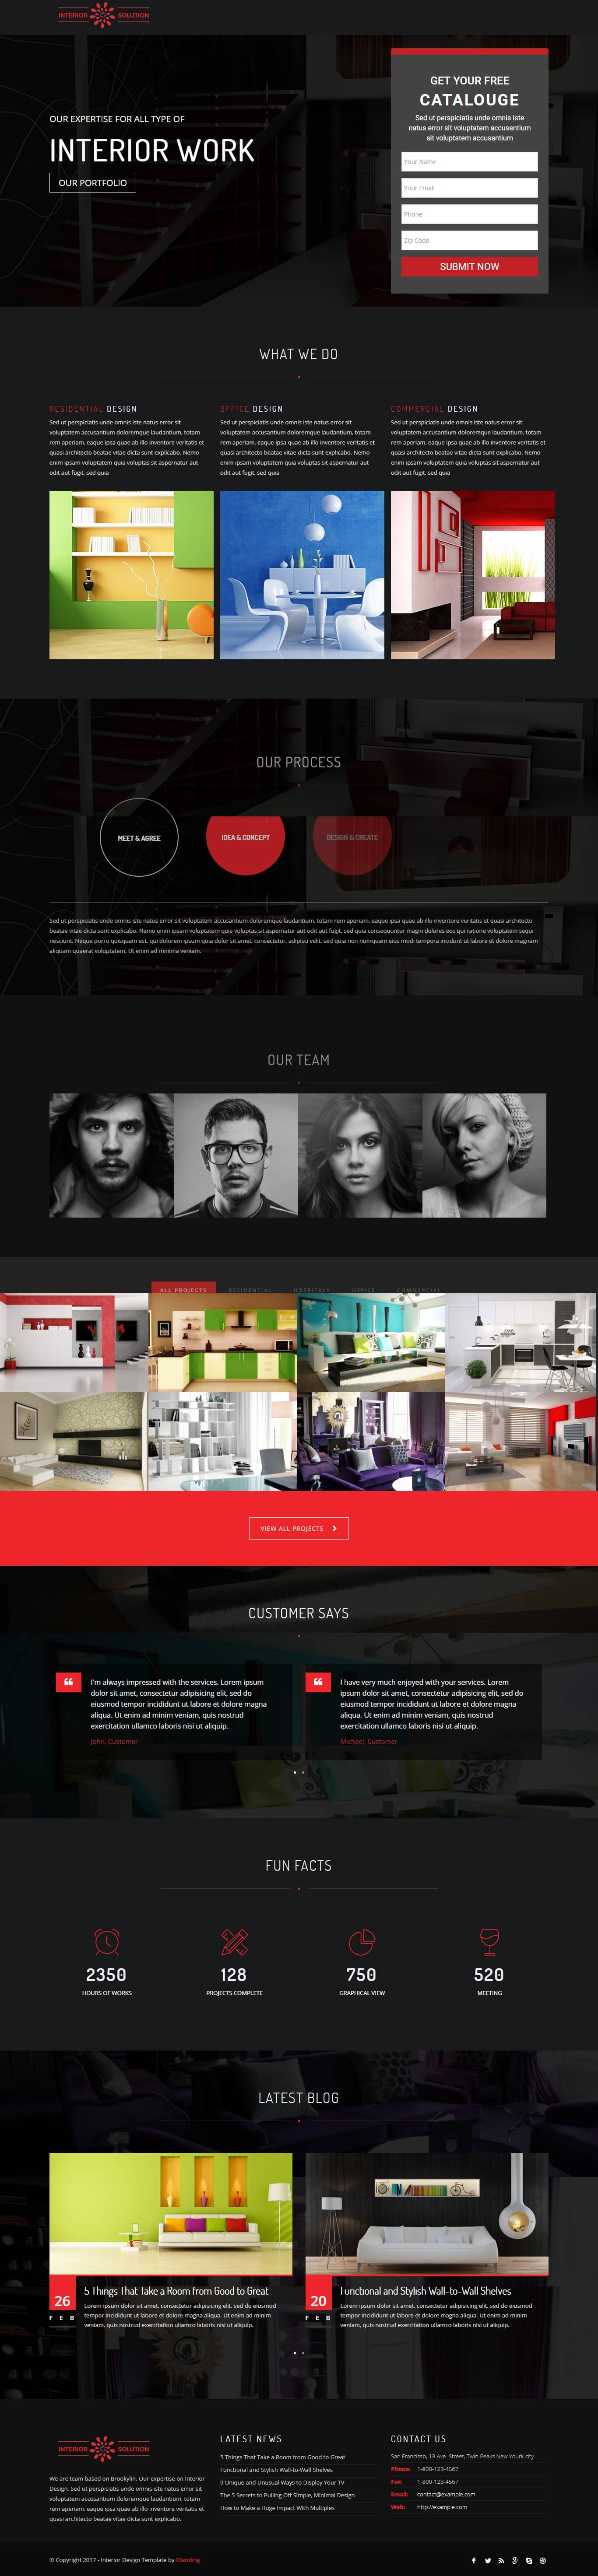 This Template Comes With Necessary Features For Your Online Presence Like  Residential Interior Solution, Hospital Interior Solution, Office Interior  ...